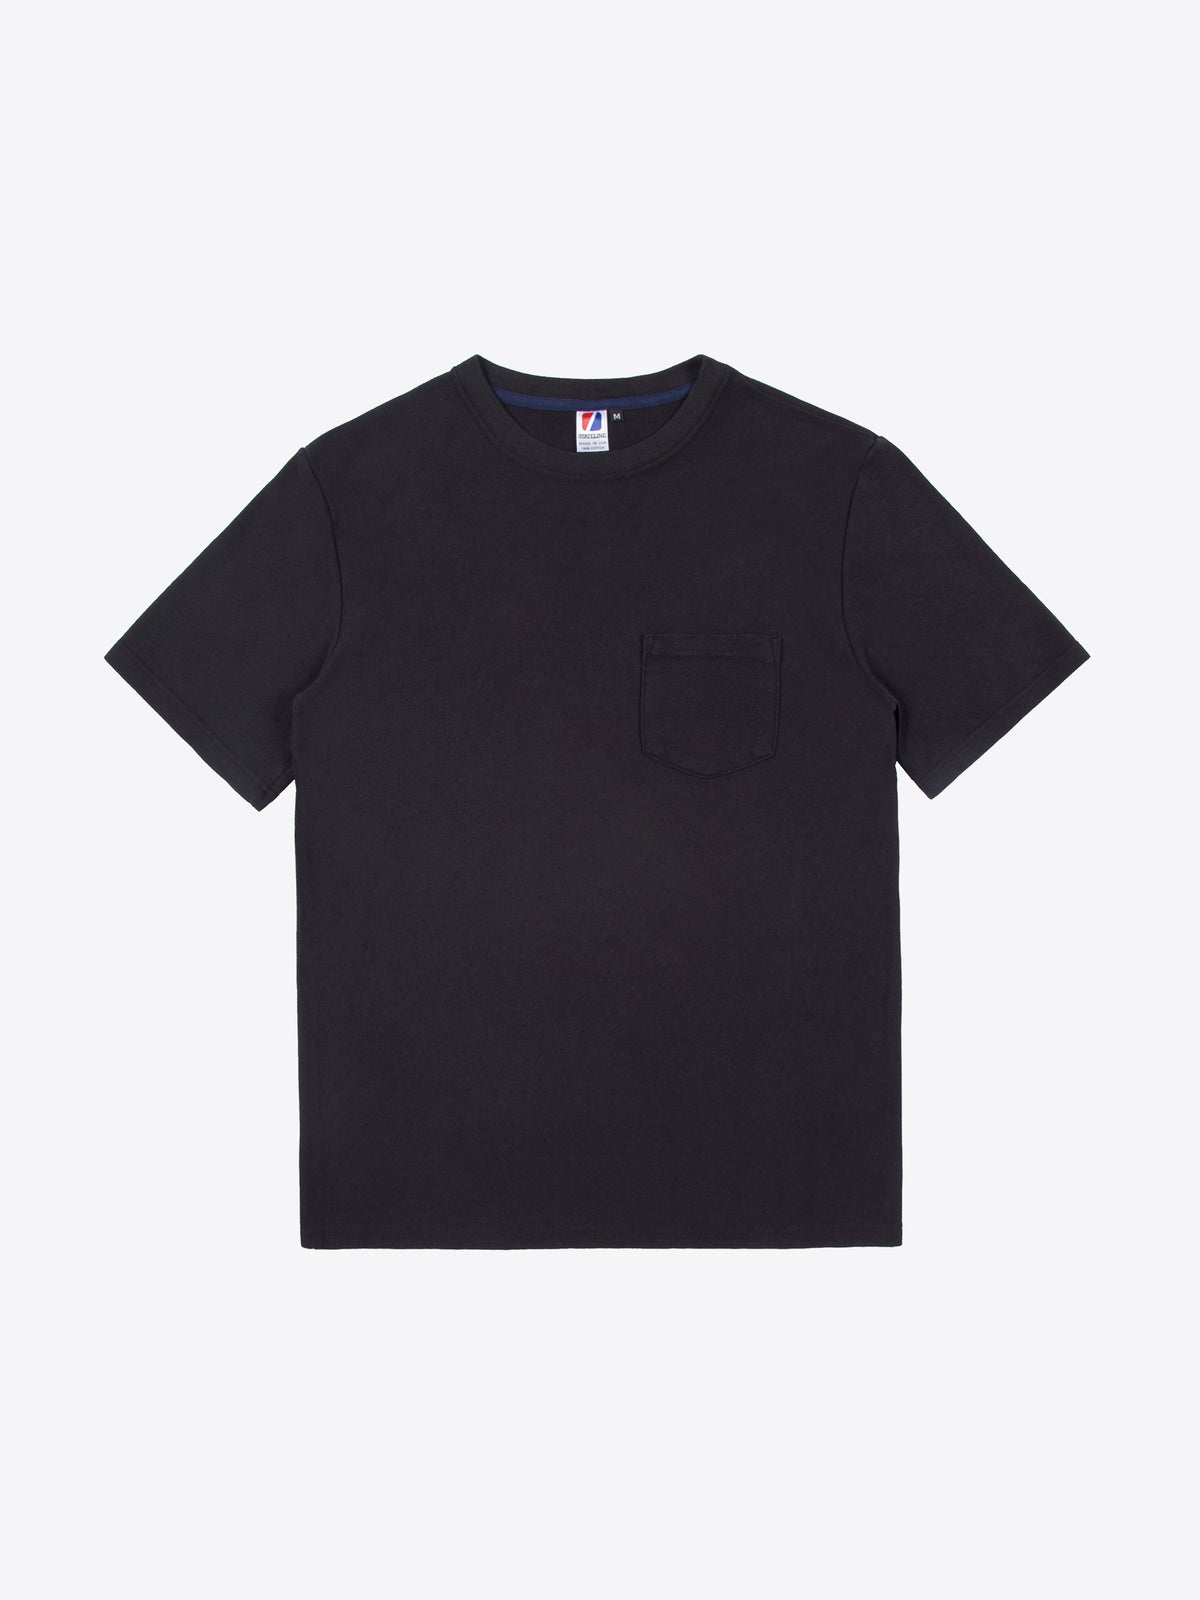 Rugby S/S Pocket Tee - Black